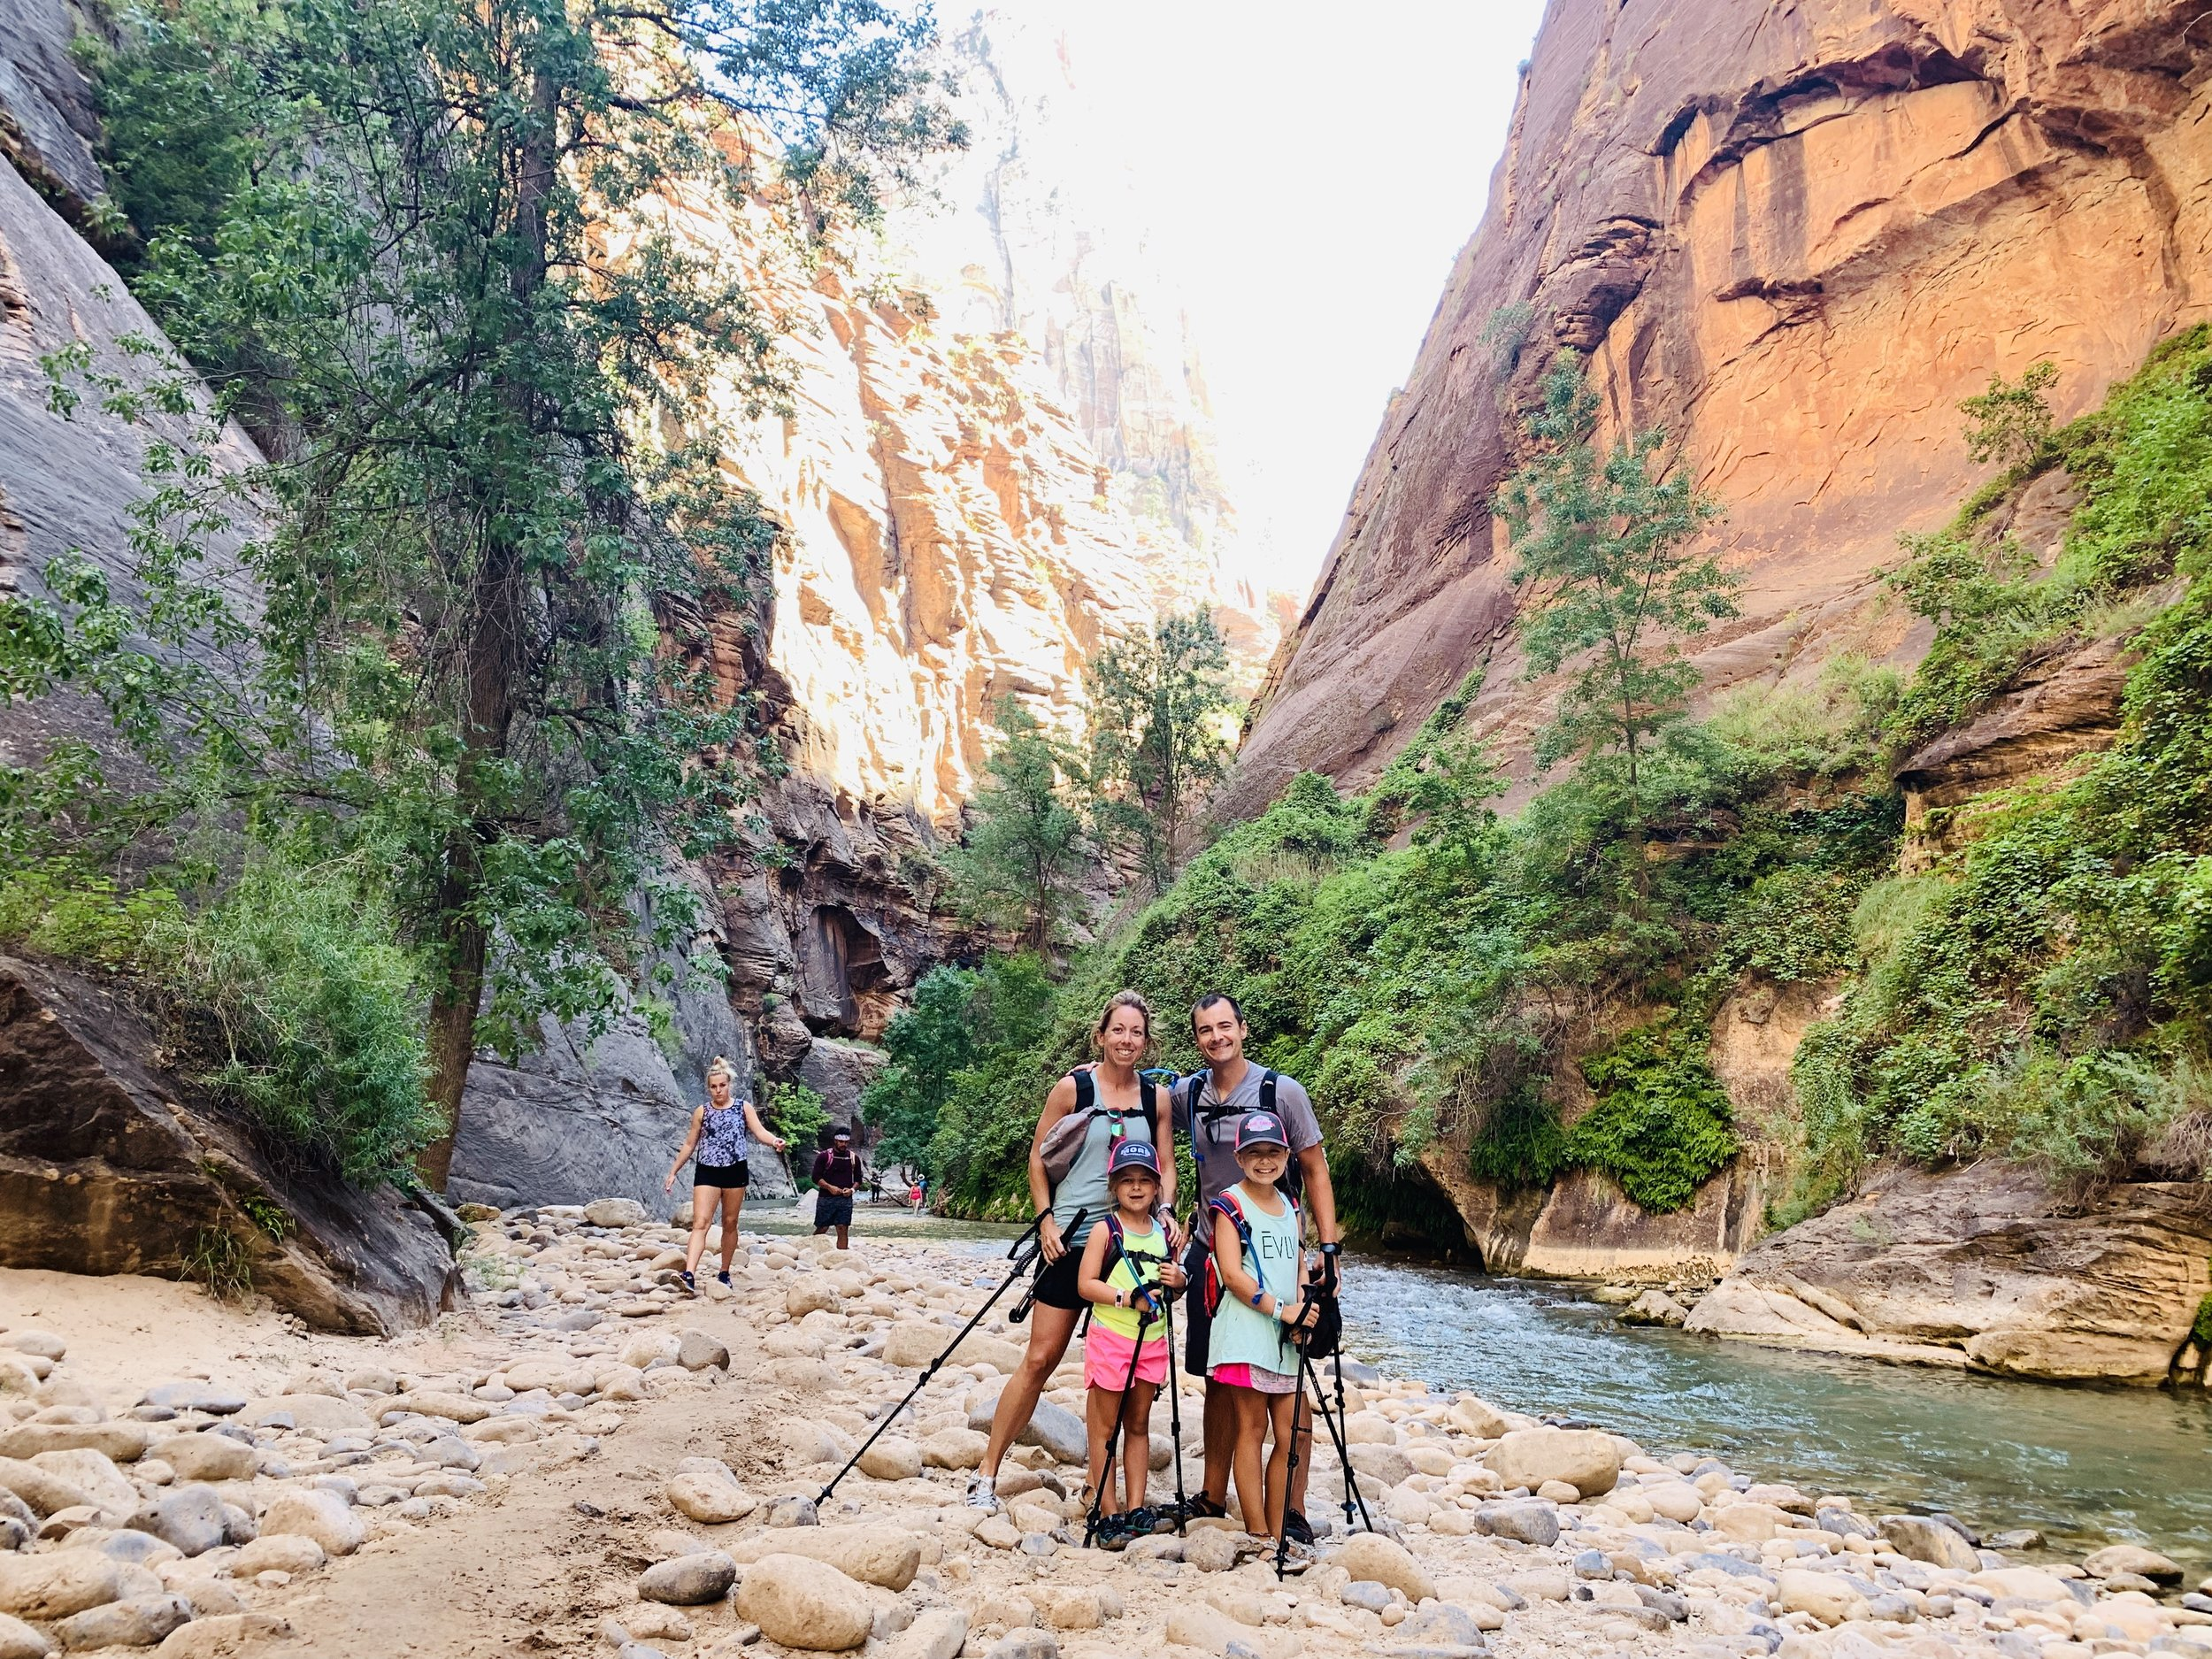 Favorite hike - The Narrows in Zion National Park